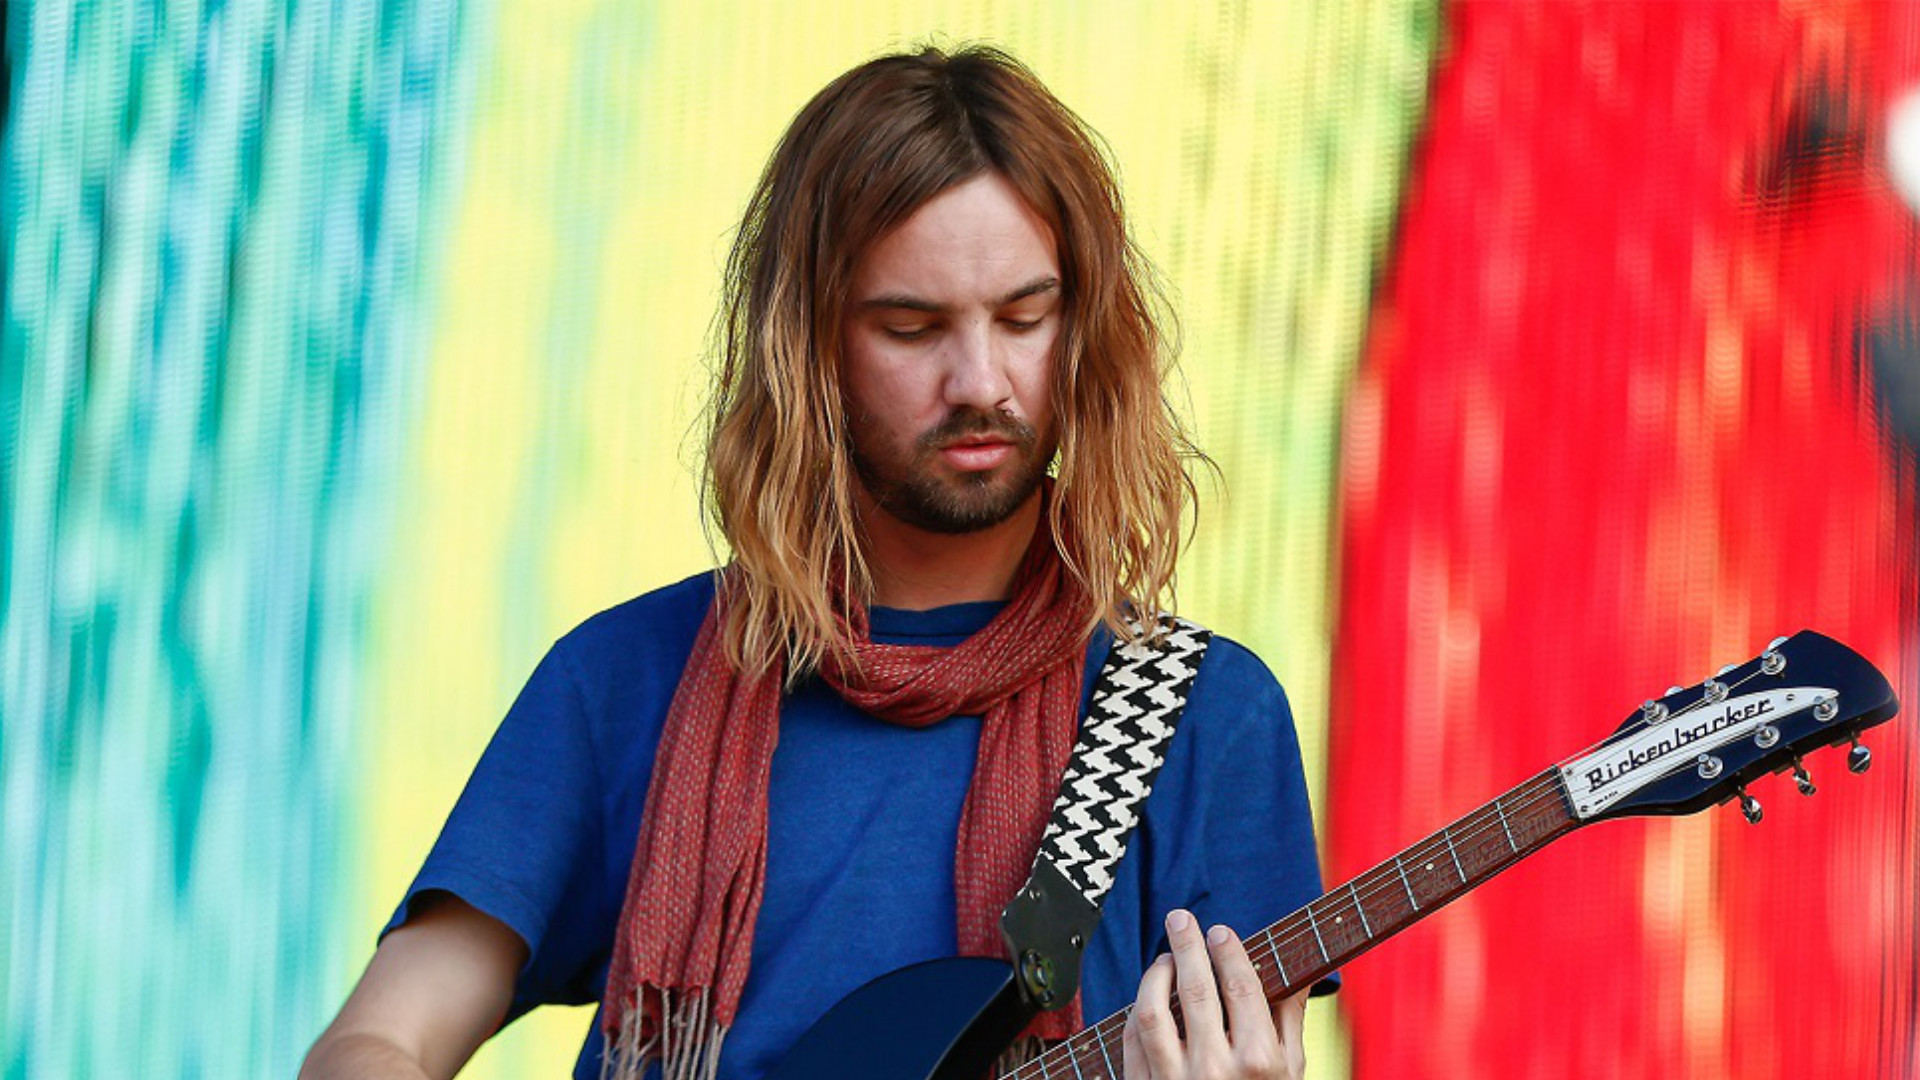 Tame Impala comparte documental sobre su álbum debut